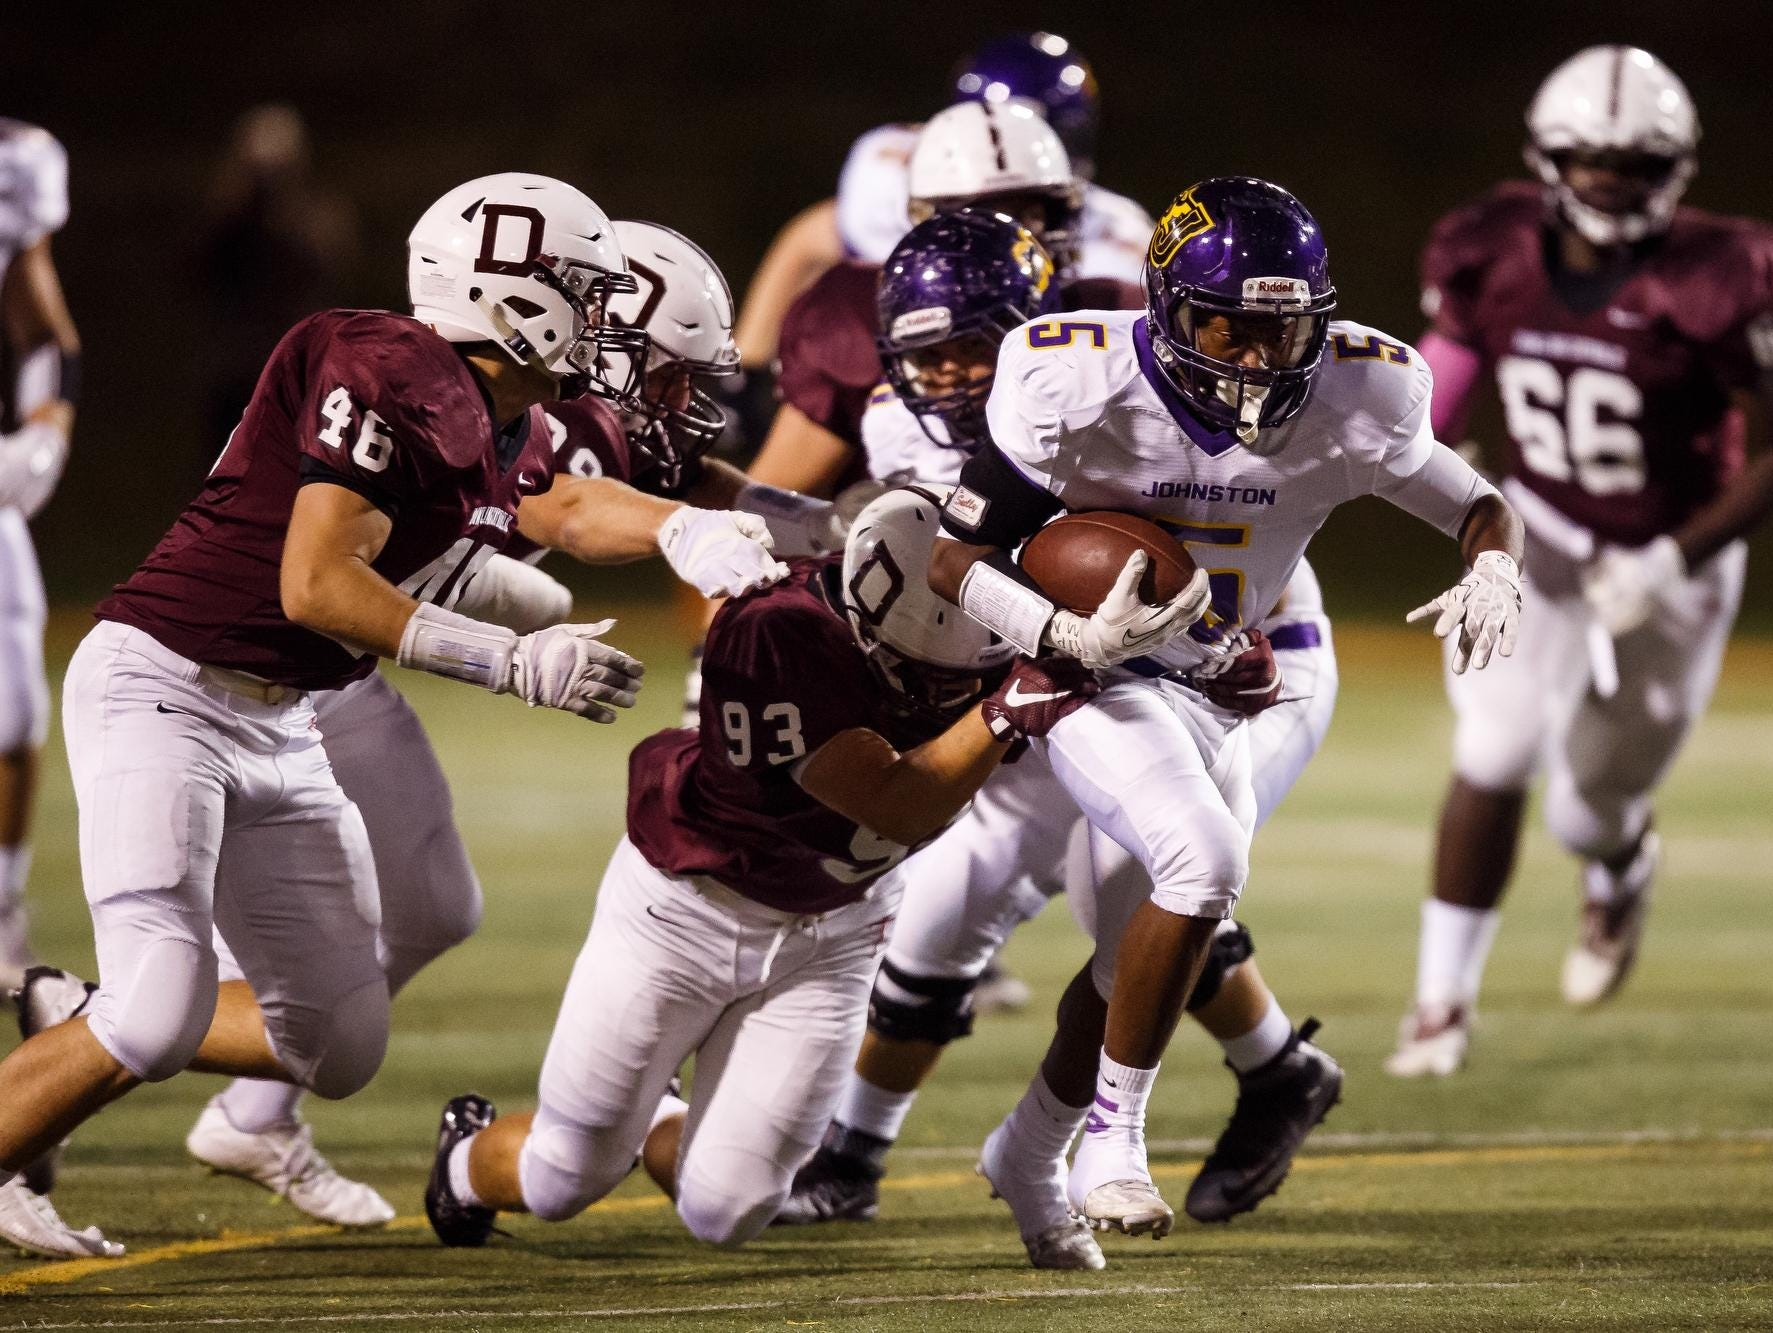 Johnston's T-Boy White is tackled by Dowling Catholic's Nico Scigliano during Friday's game at Valley Stadium. The unbeaten Maroons (6-0) punished Johnston 35-15 to clear their last significant hurdle to an unbeaten regular season.